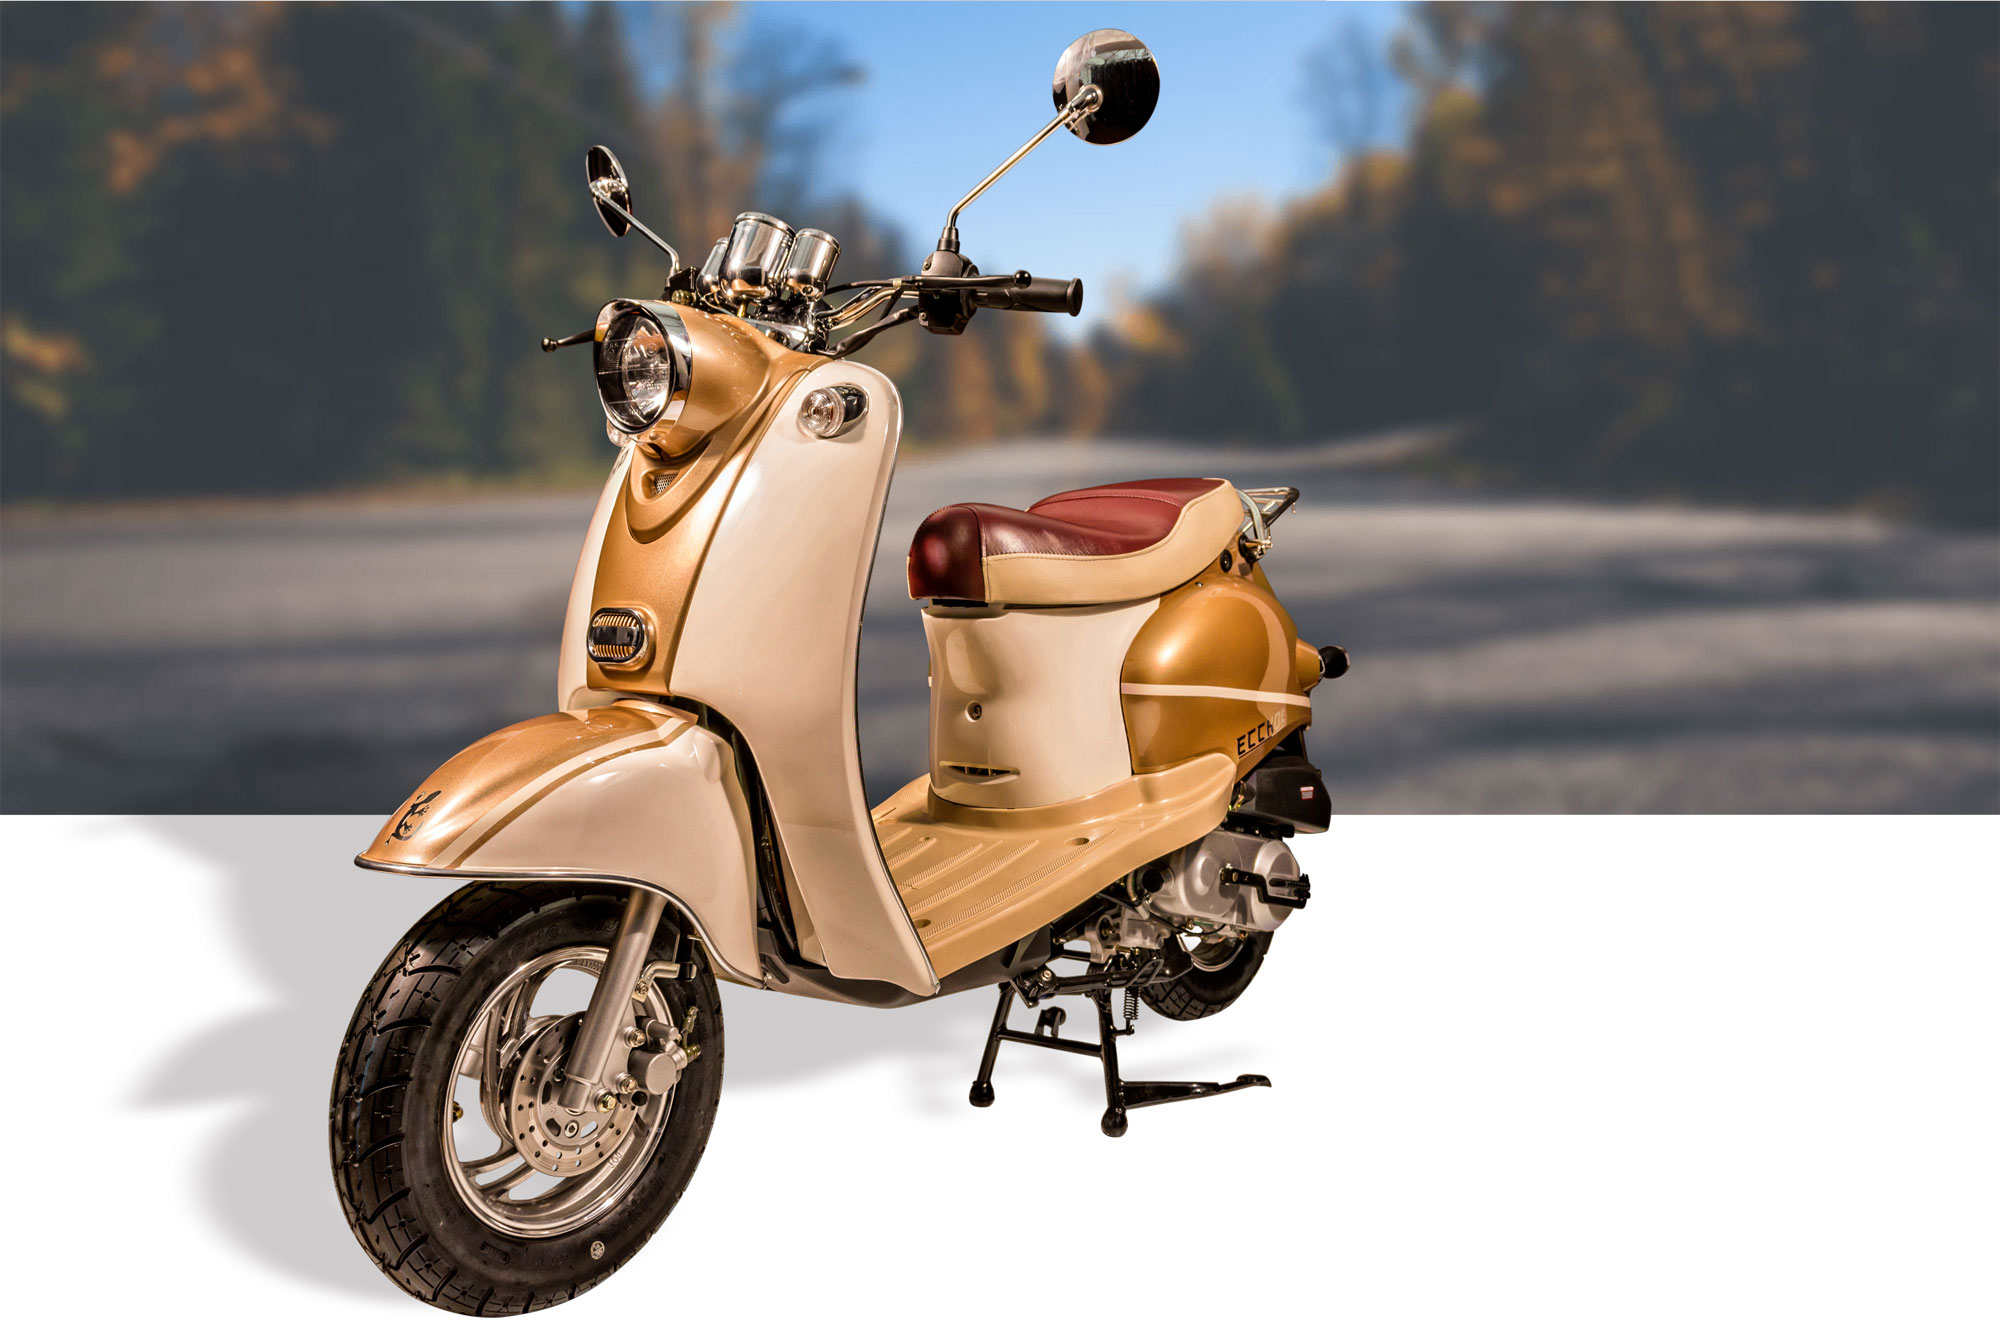 SCOOTER-50-ECCHO-RETRO-50-GOLD-II-EFI-05